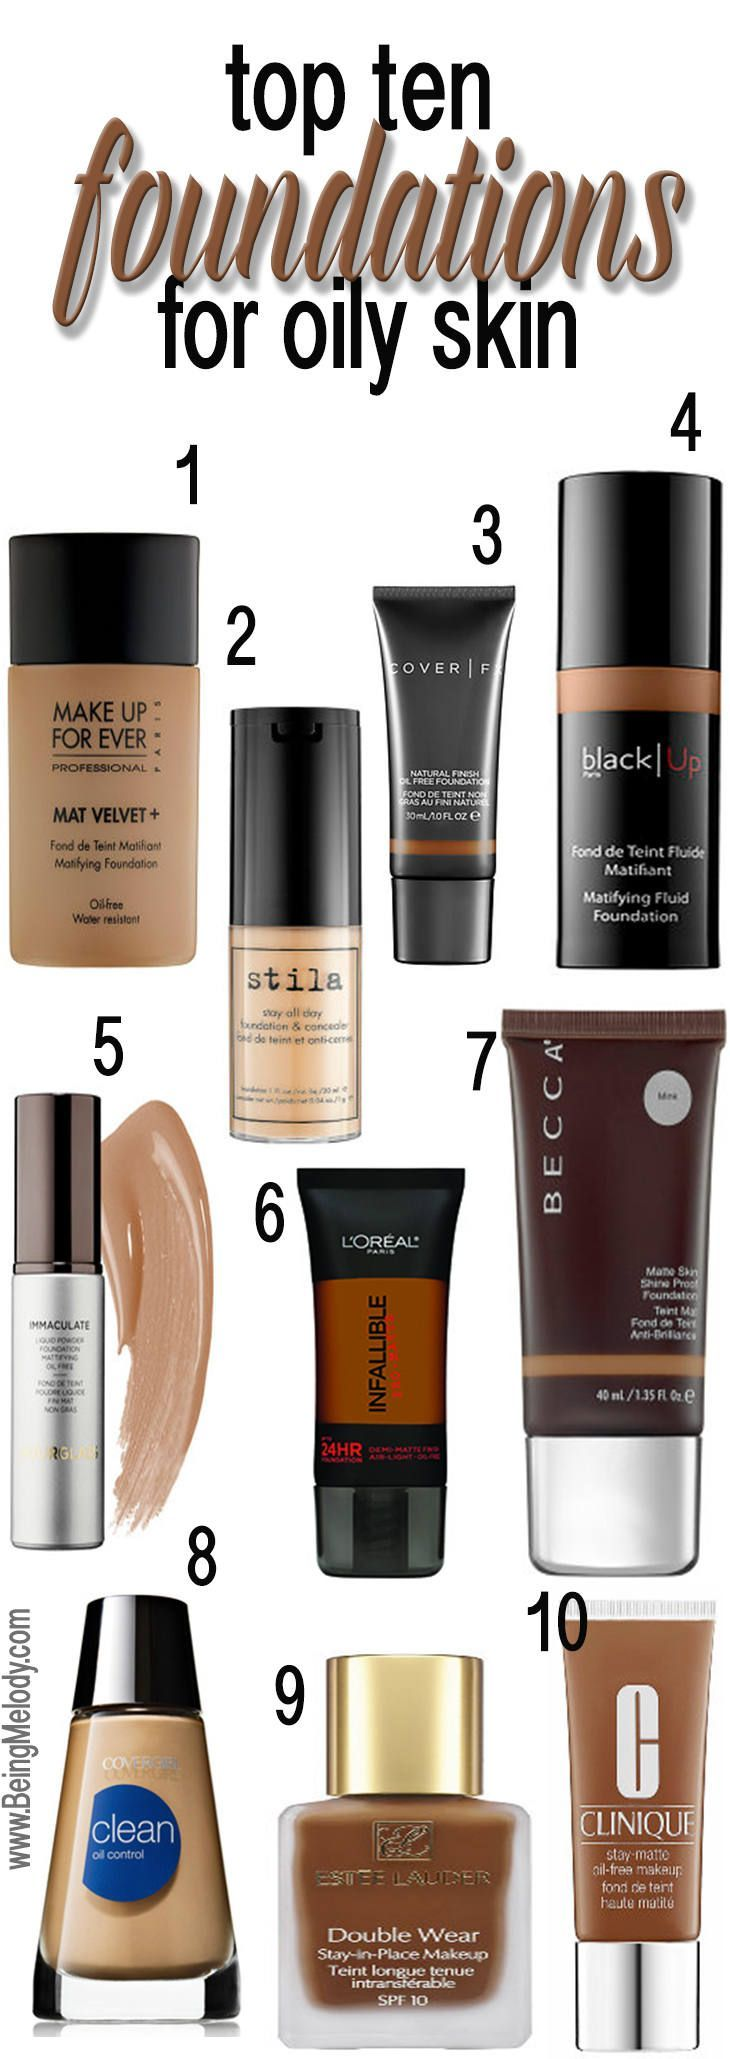 """Top Ten Foundations for Oily Skin 